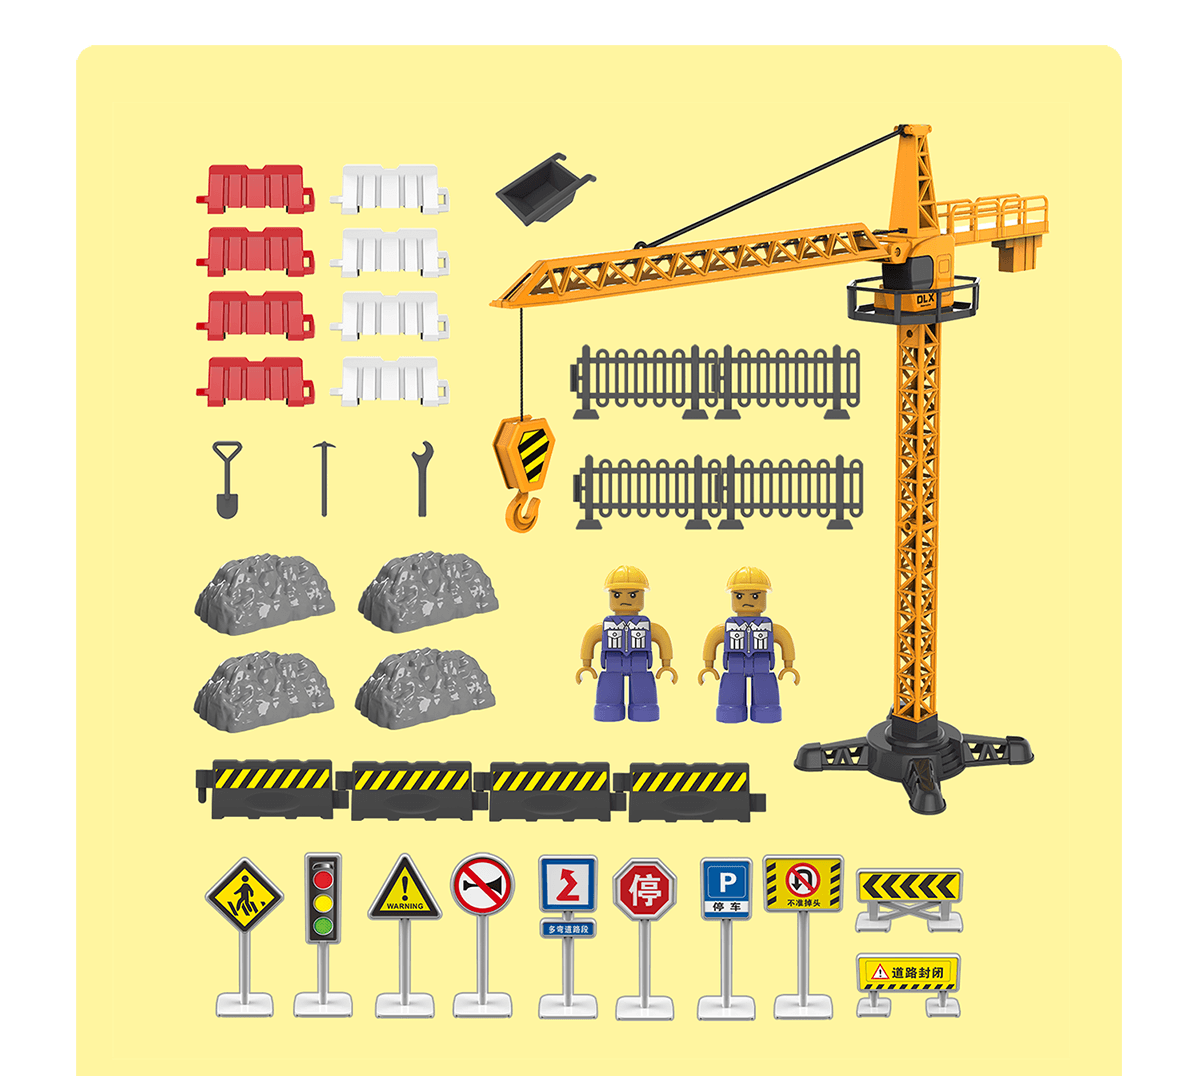 medium resolution of construction tower crane site road signs traffic light accessories diecast toy city building play set engineering toys for boys